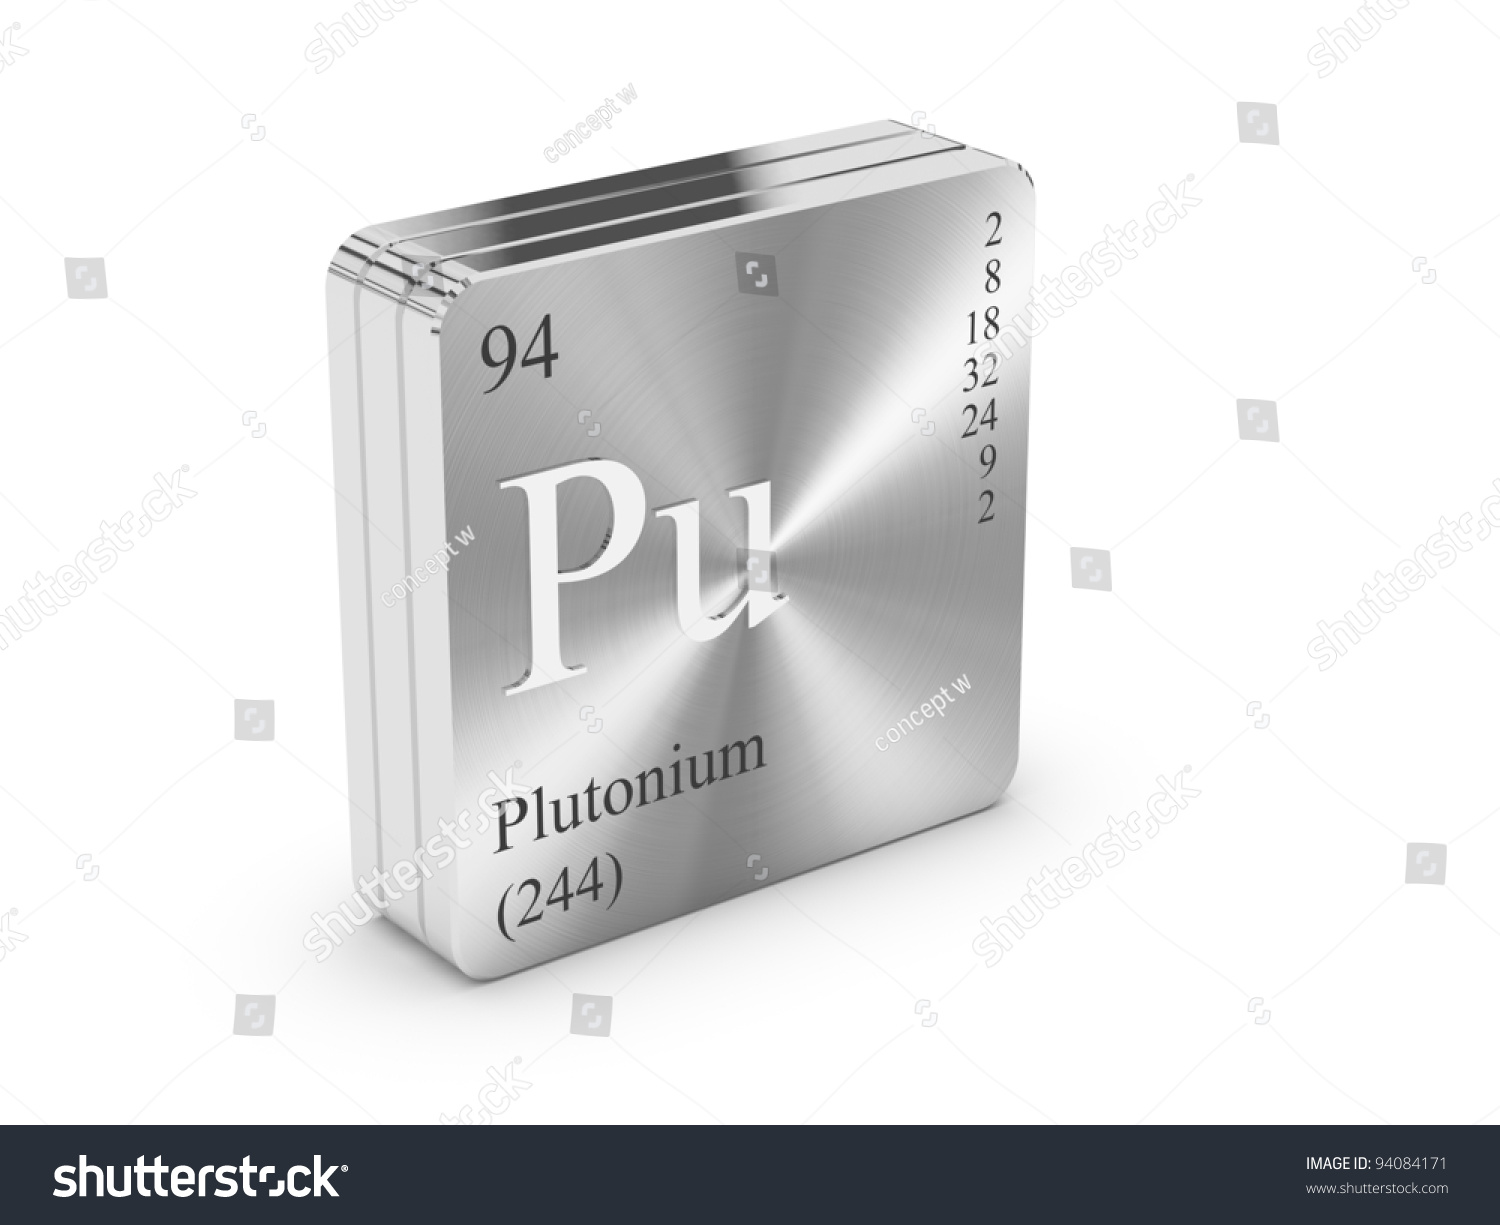 Plutonium element periodic table on metal stock illustration plutonium element of the periodic table on metal steel block gamestrikefo Image collections